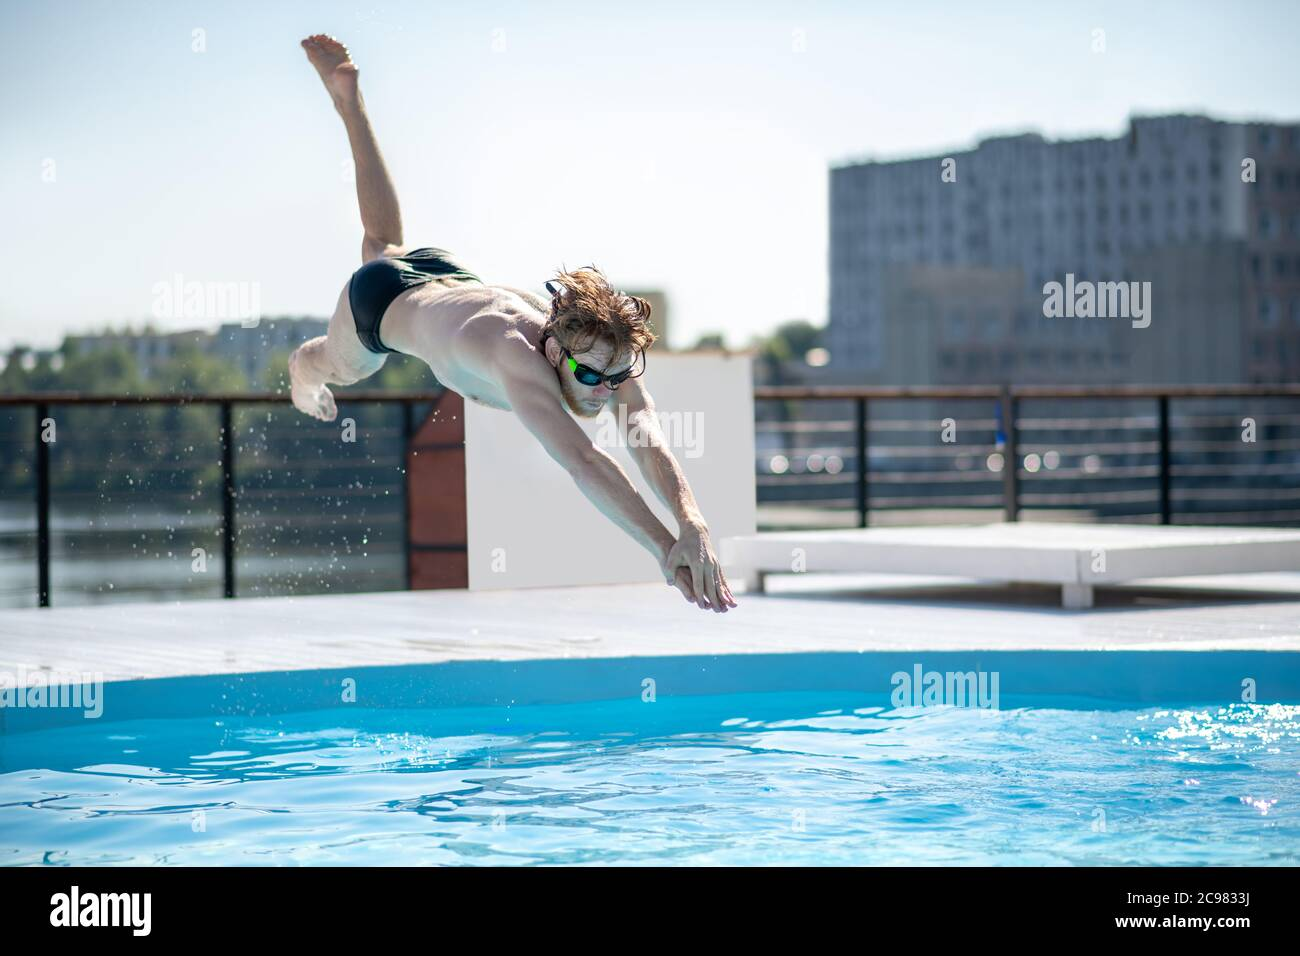 Swimmer at the time of jump in open pool Stock Photo